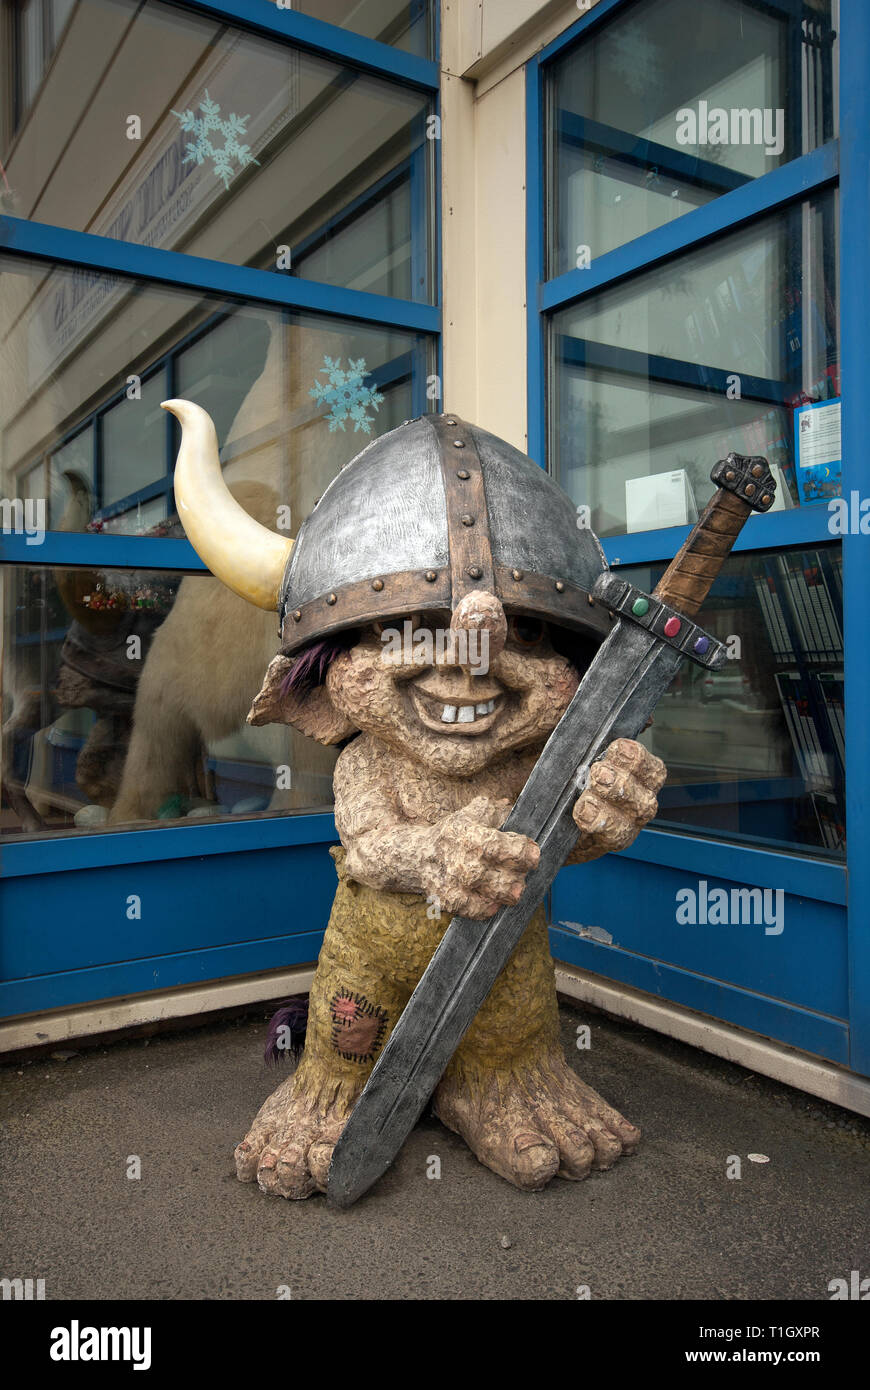 Statue of troll in Honningsvag, Mageroya Island, County Finnmark, Norway - Stock Image